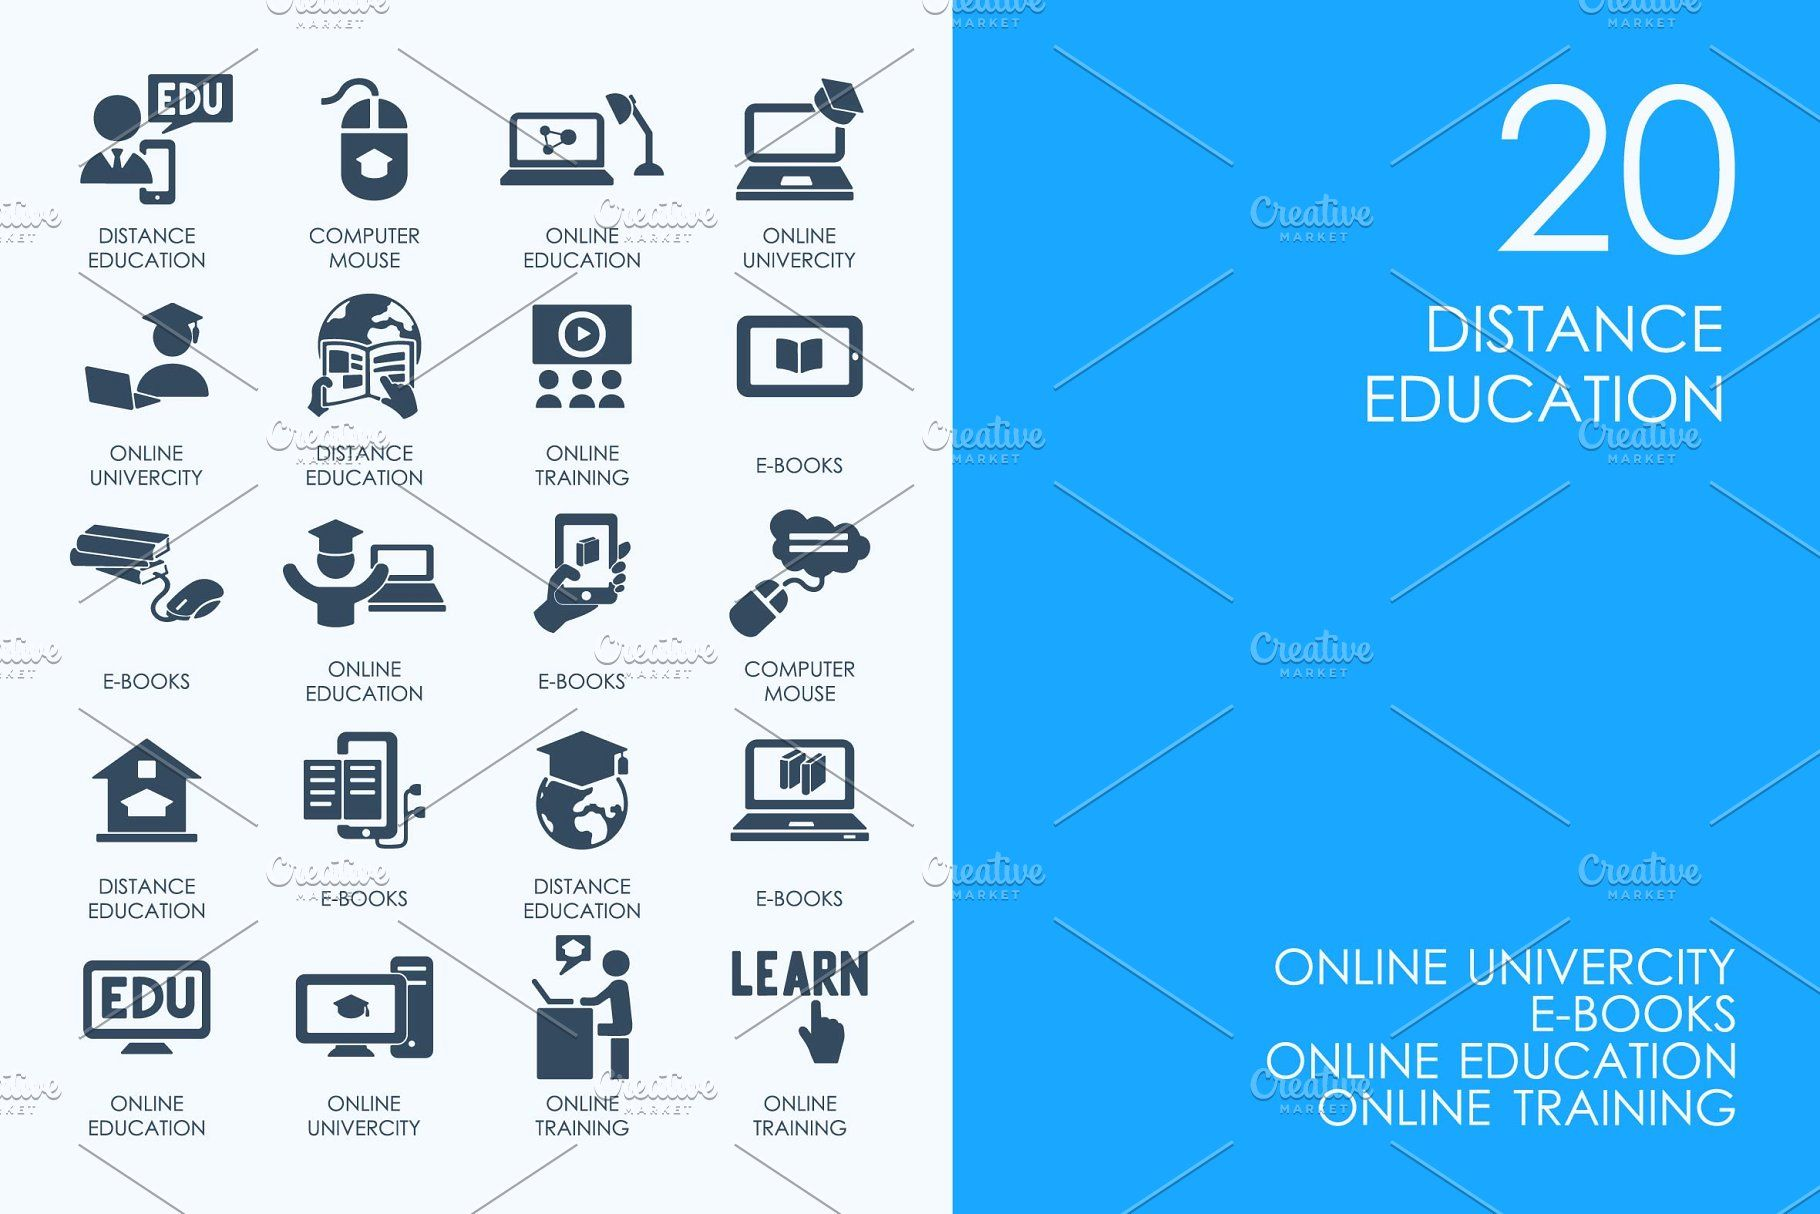 Distance education icons educationDistanceIconsicons